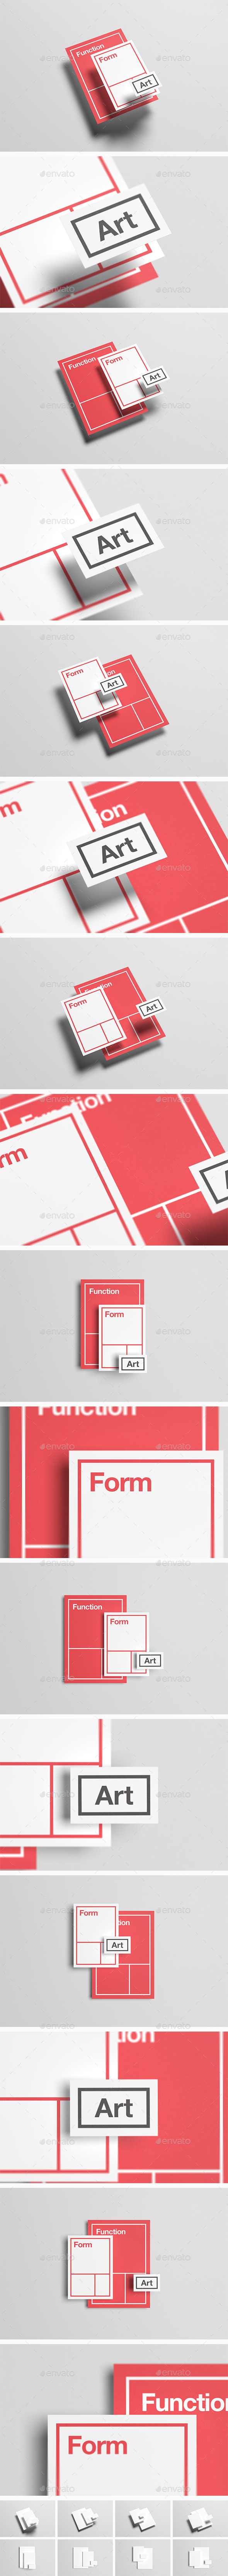 Floating Stationery Mock-Up  - A4, A5, Business Card (Stationery)